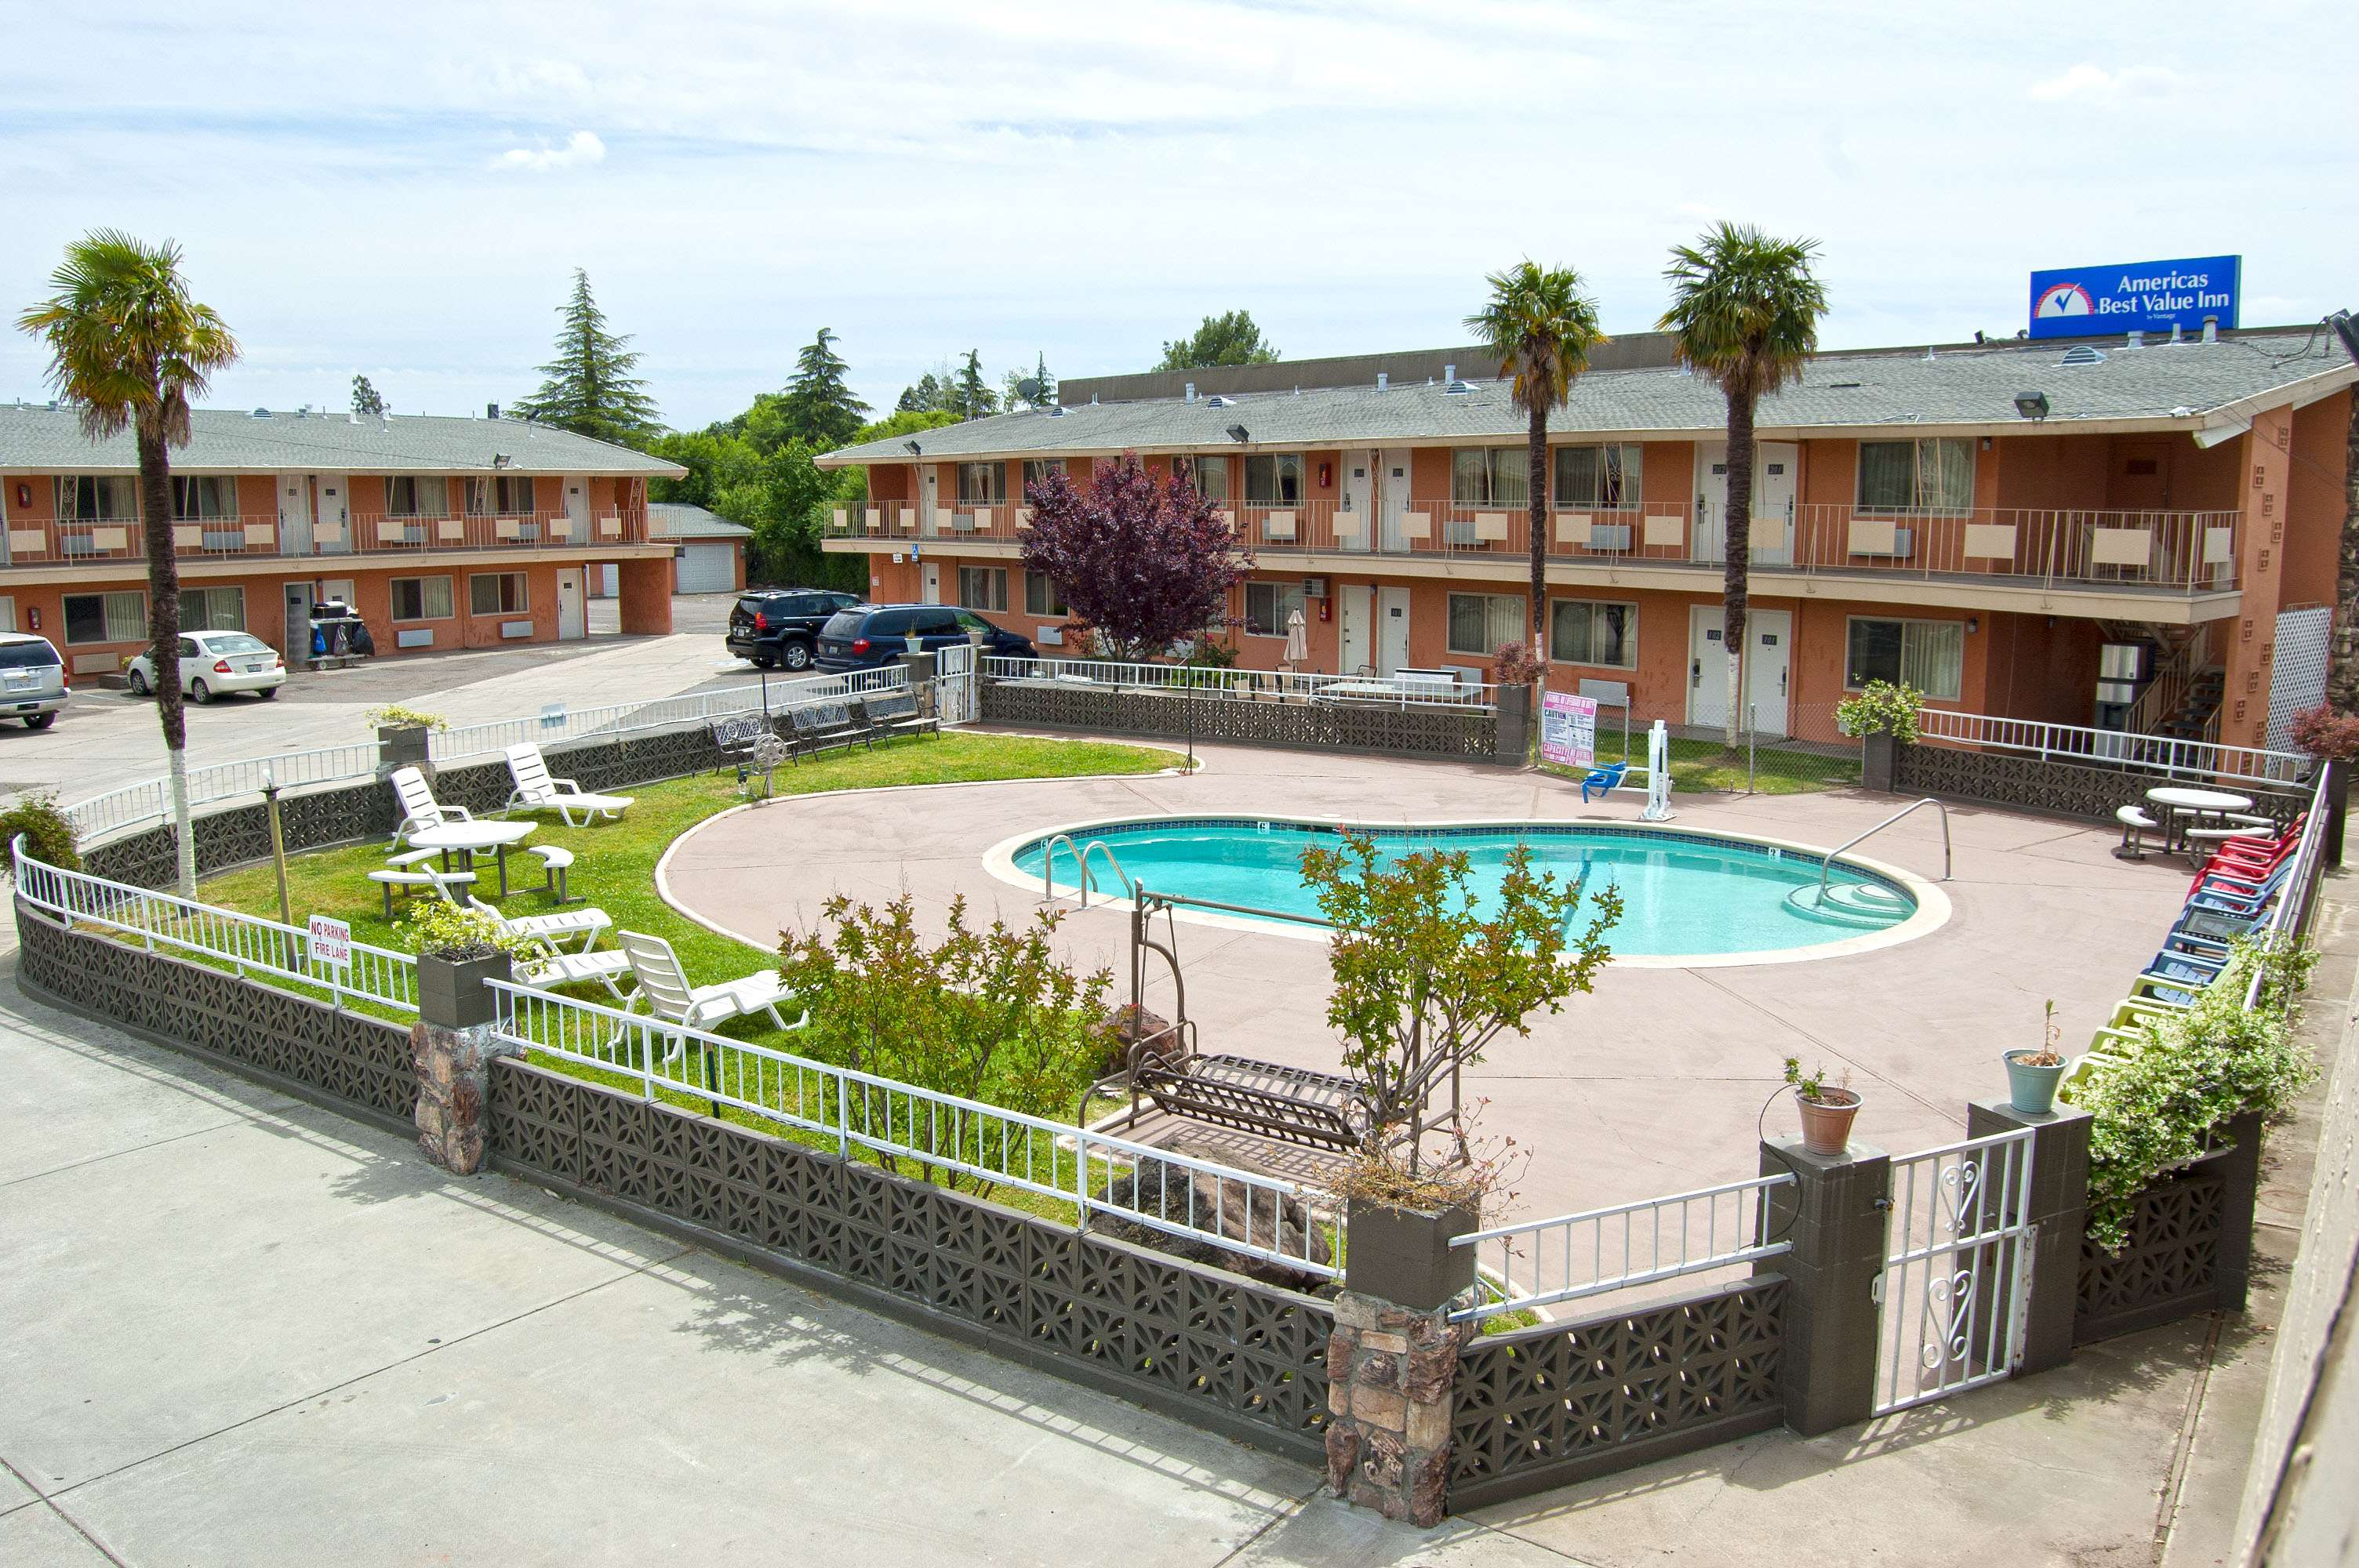 Americas best value inn red bluff coupons red bluff ca for Americas best coupons